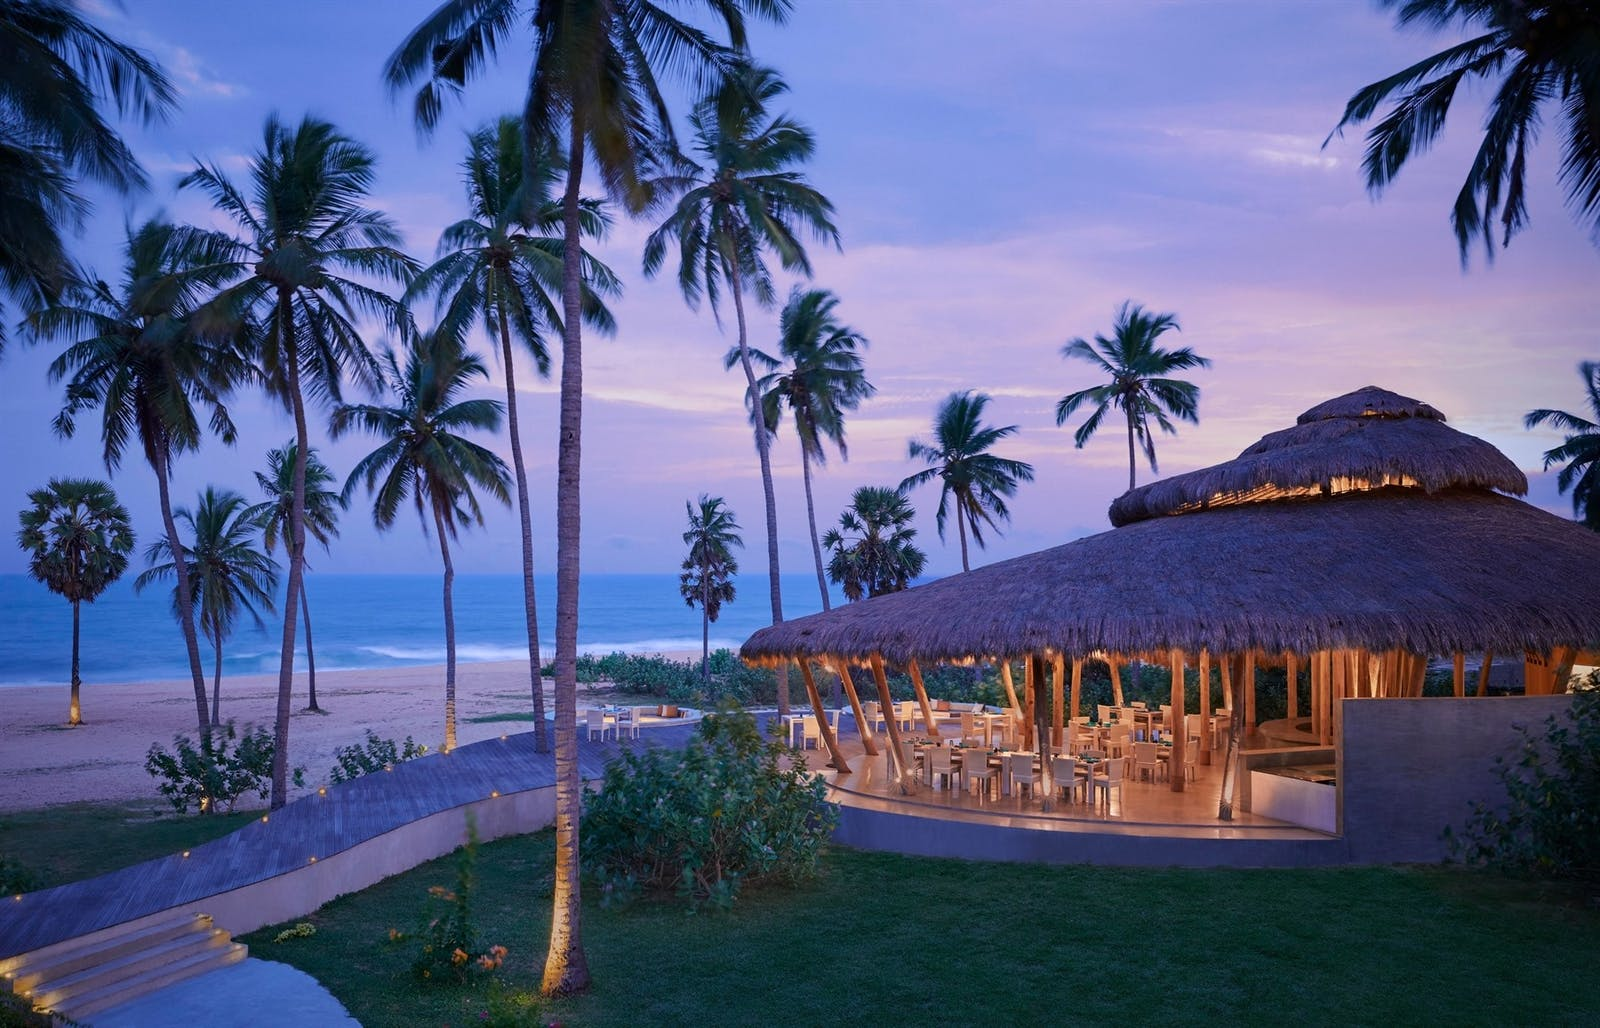 Evening View of Dining Area, Jetwing Surf, East Coast Beaches, Sri Lanka